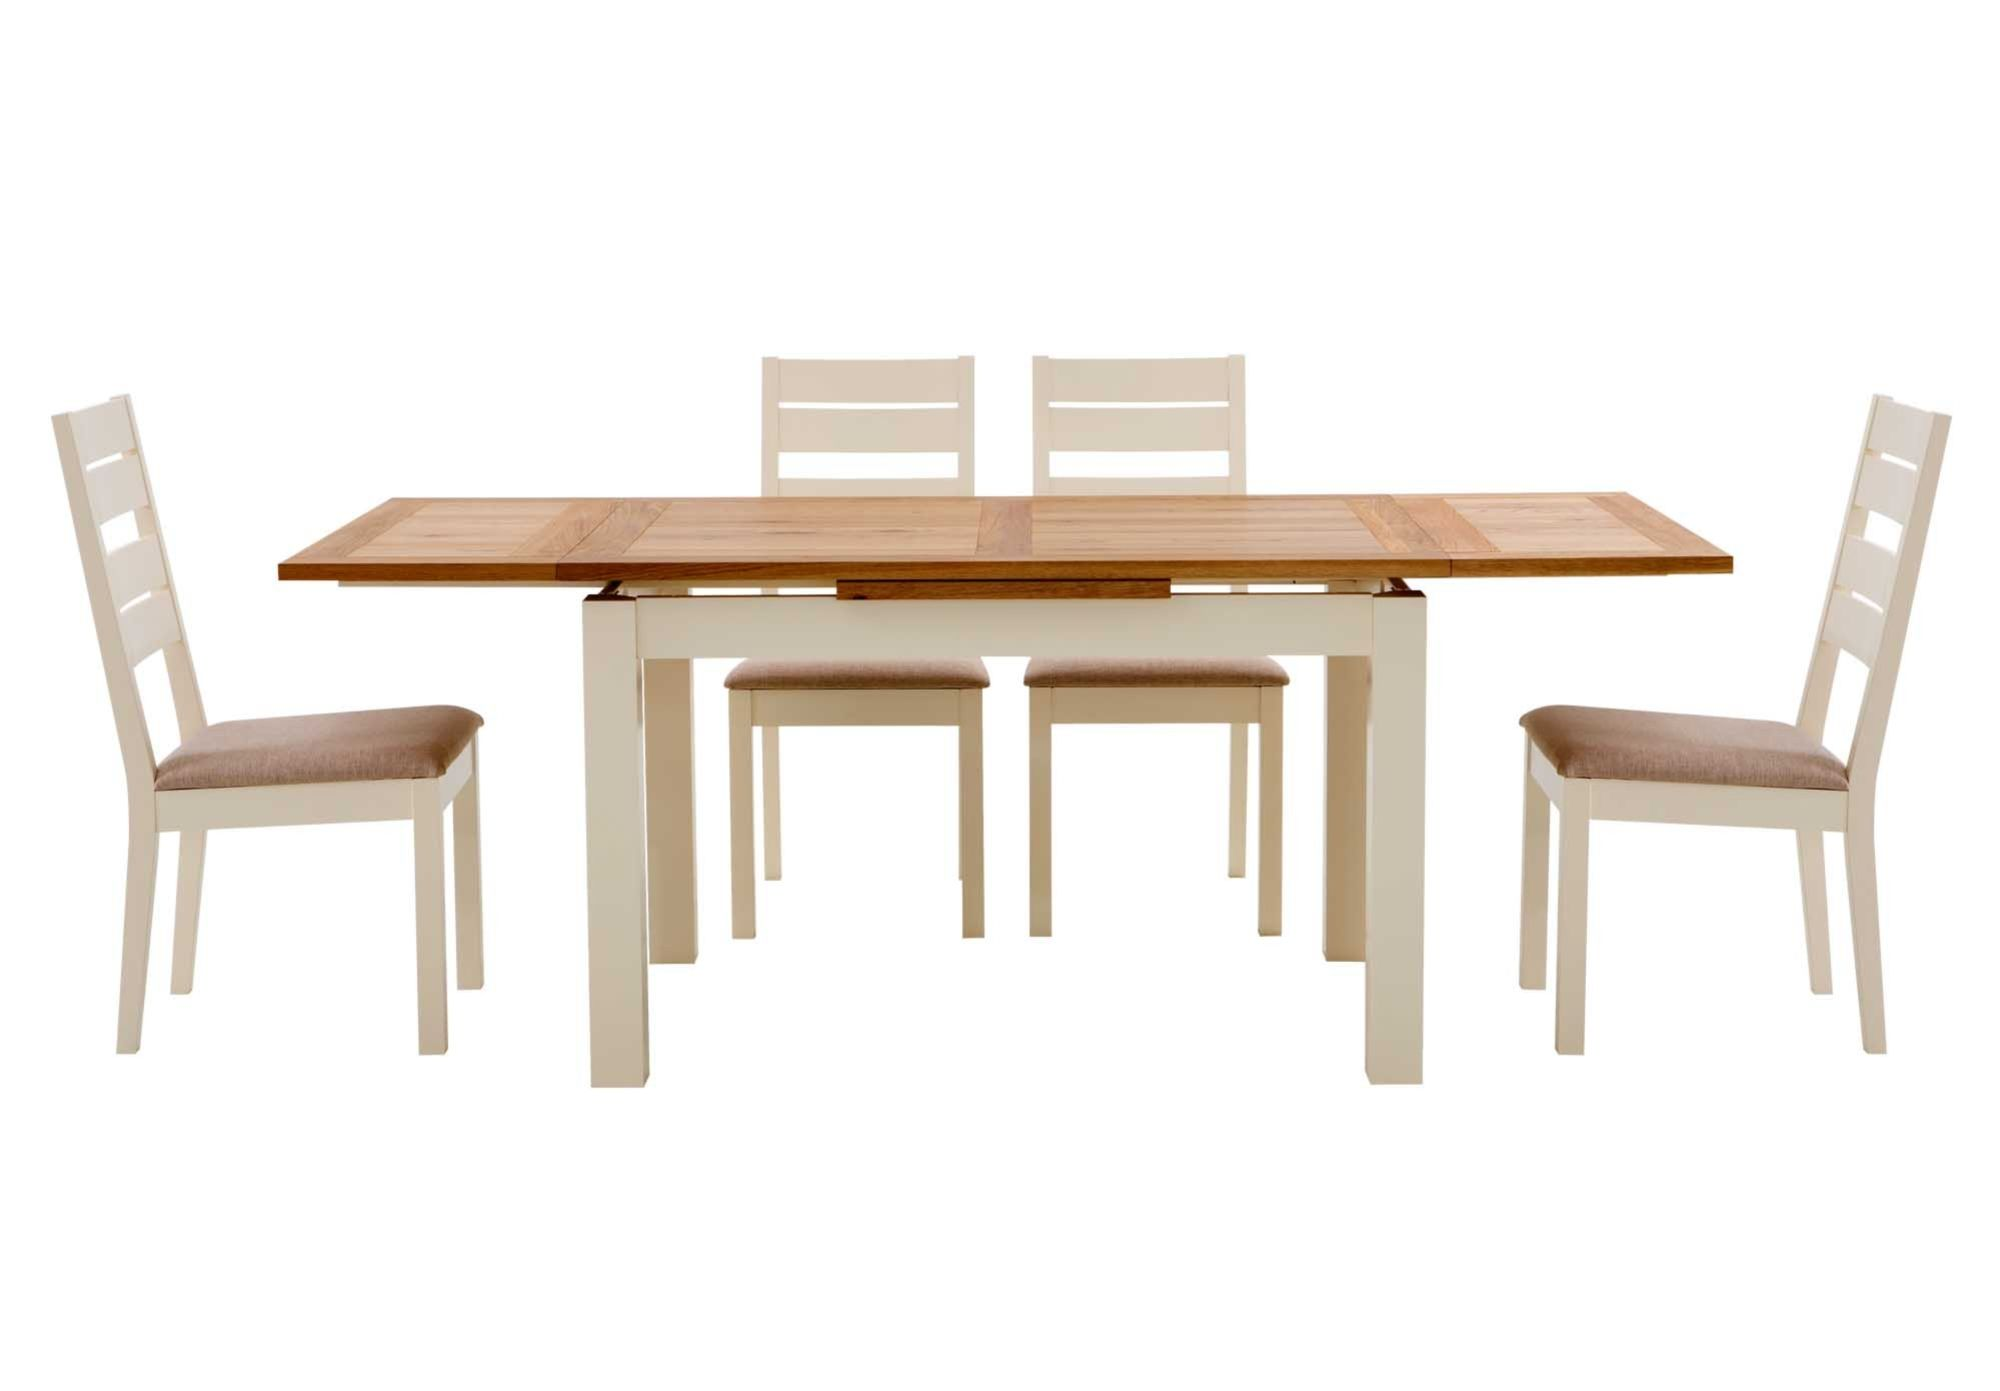 An Extending Dining Table Would Be Really Usefulbentley Designs Classy Dining Room Table And Chairs For 4 Design Decoration